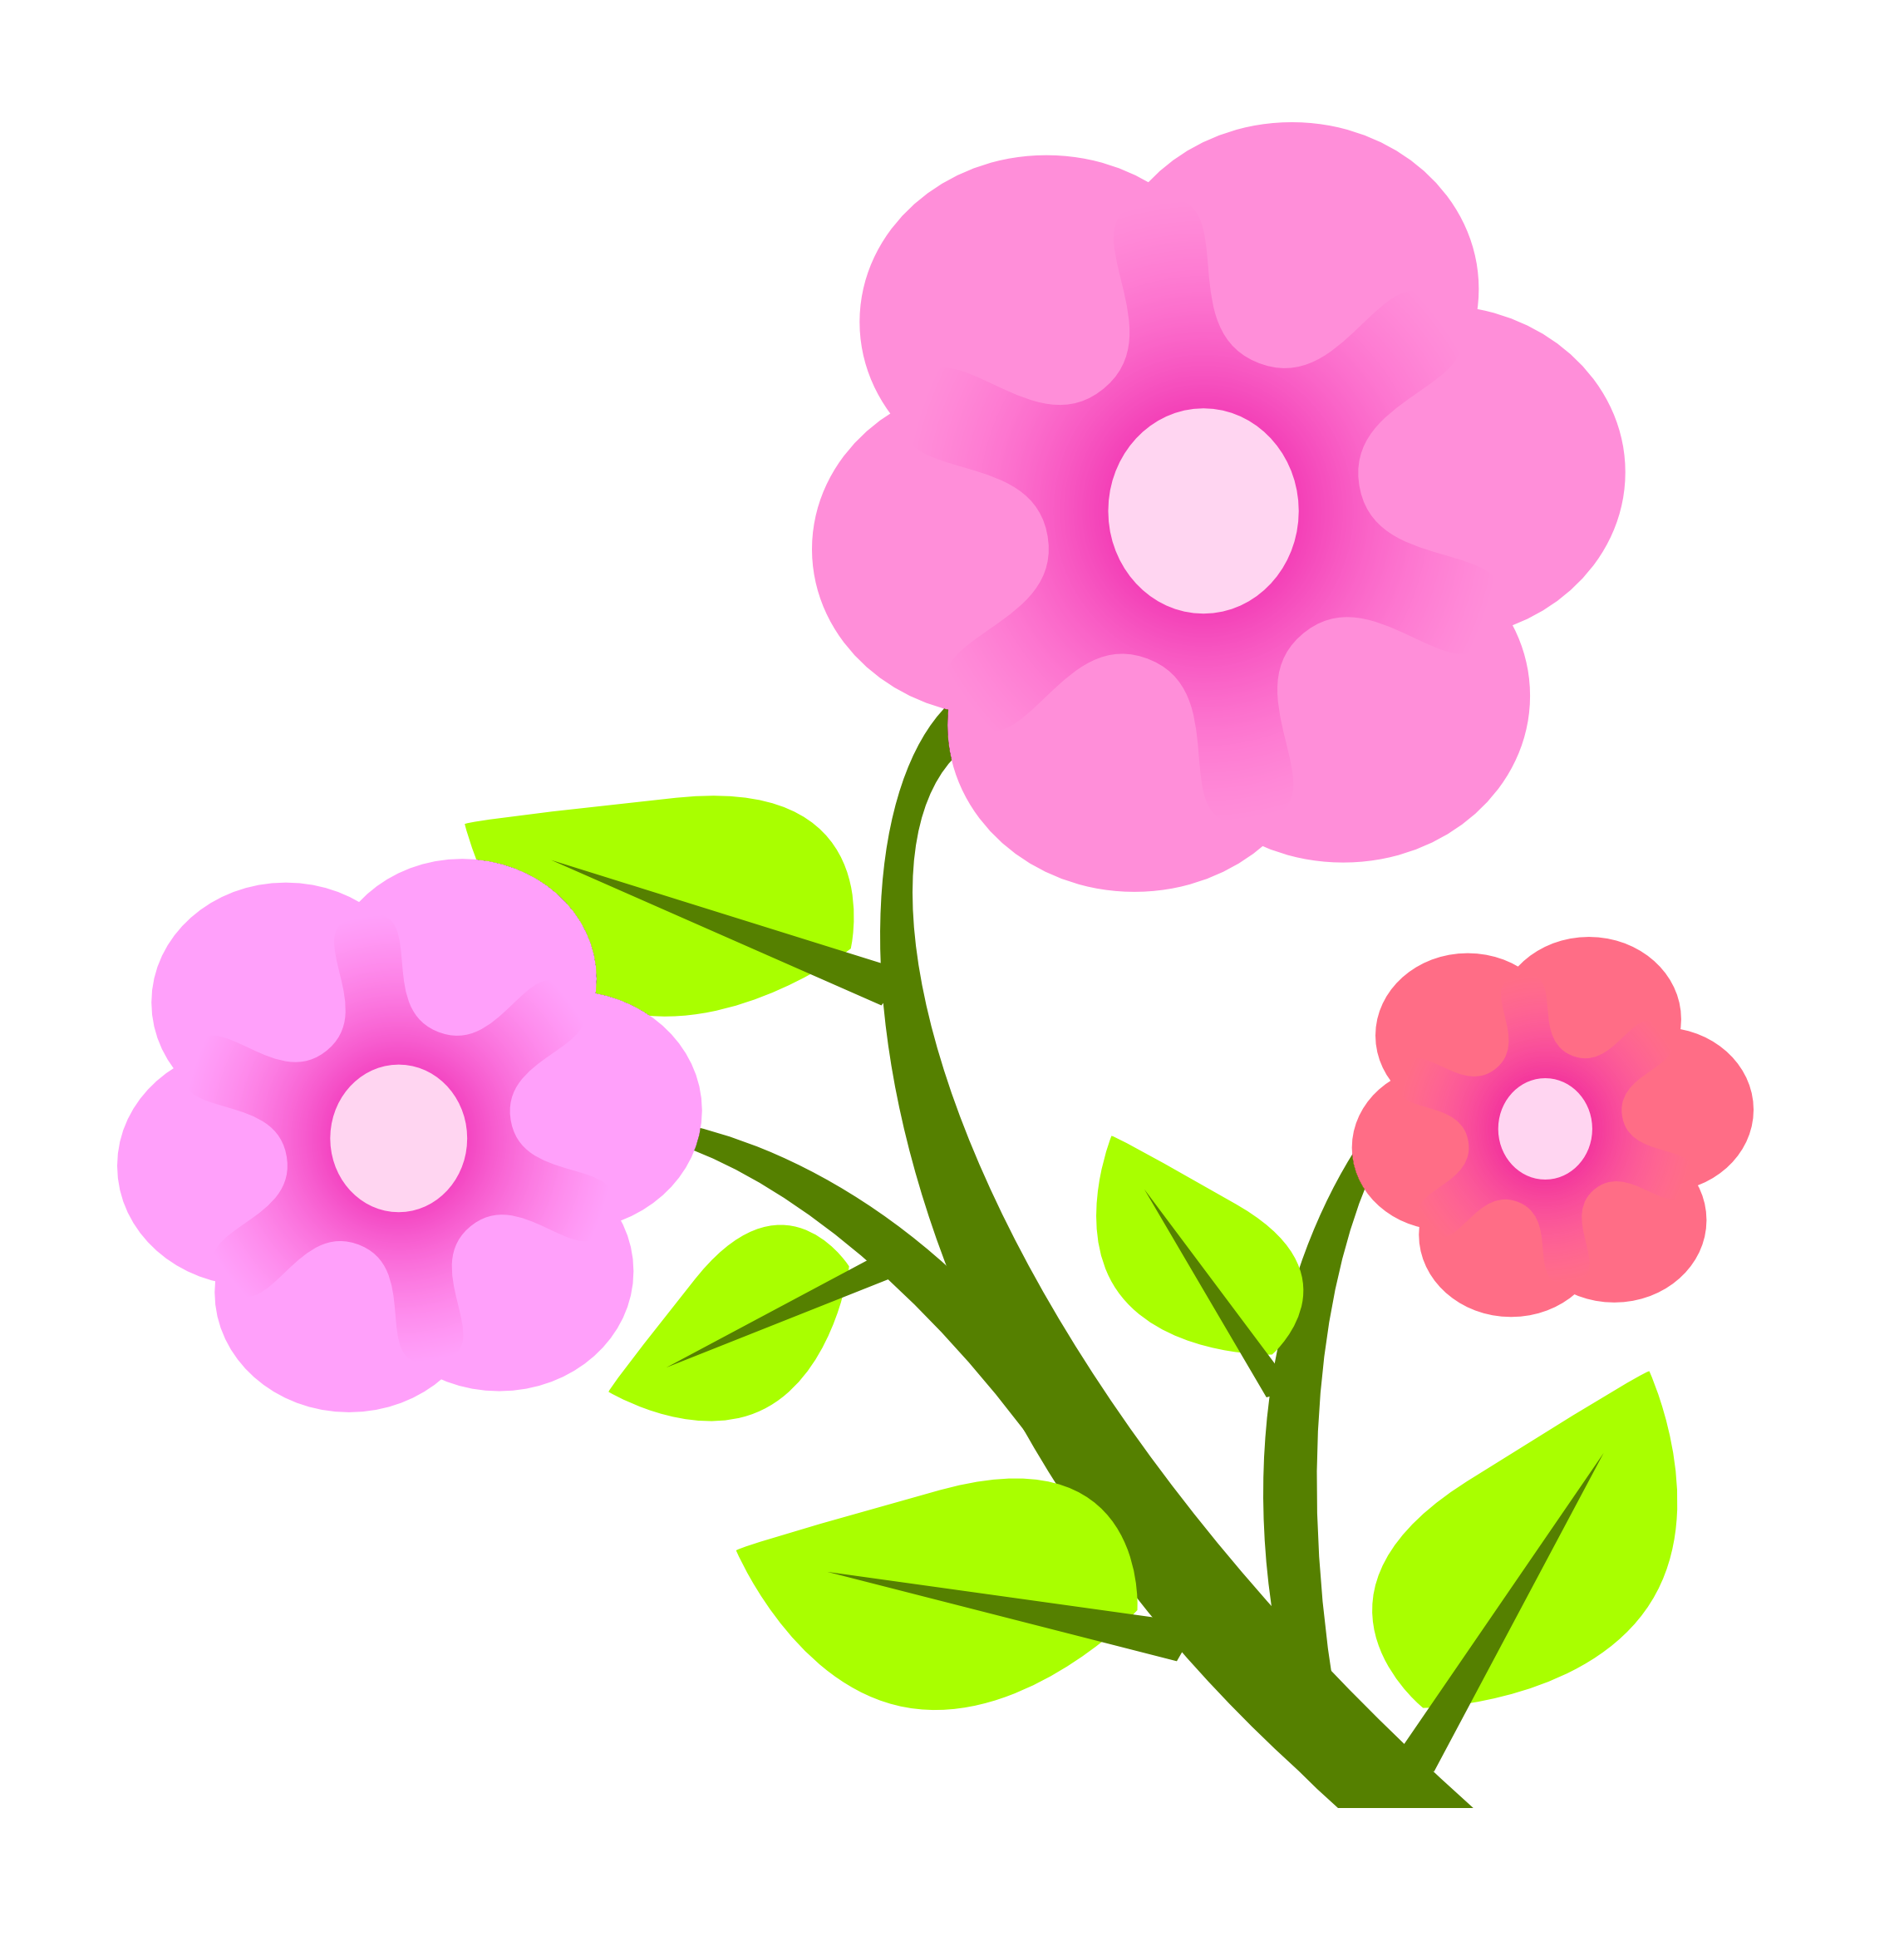 Flower Vector PNG Image Vector flowers, Png images